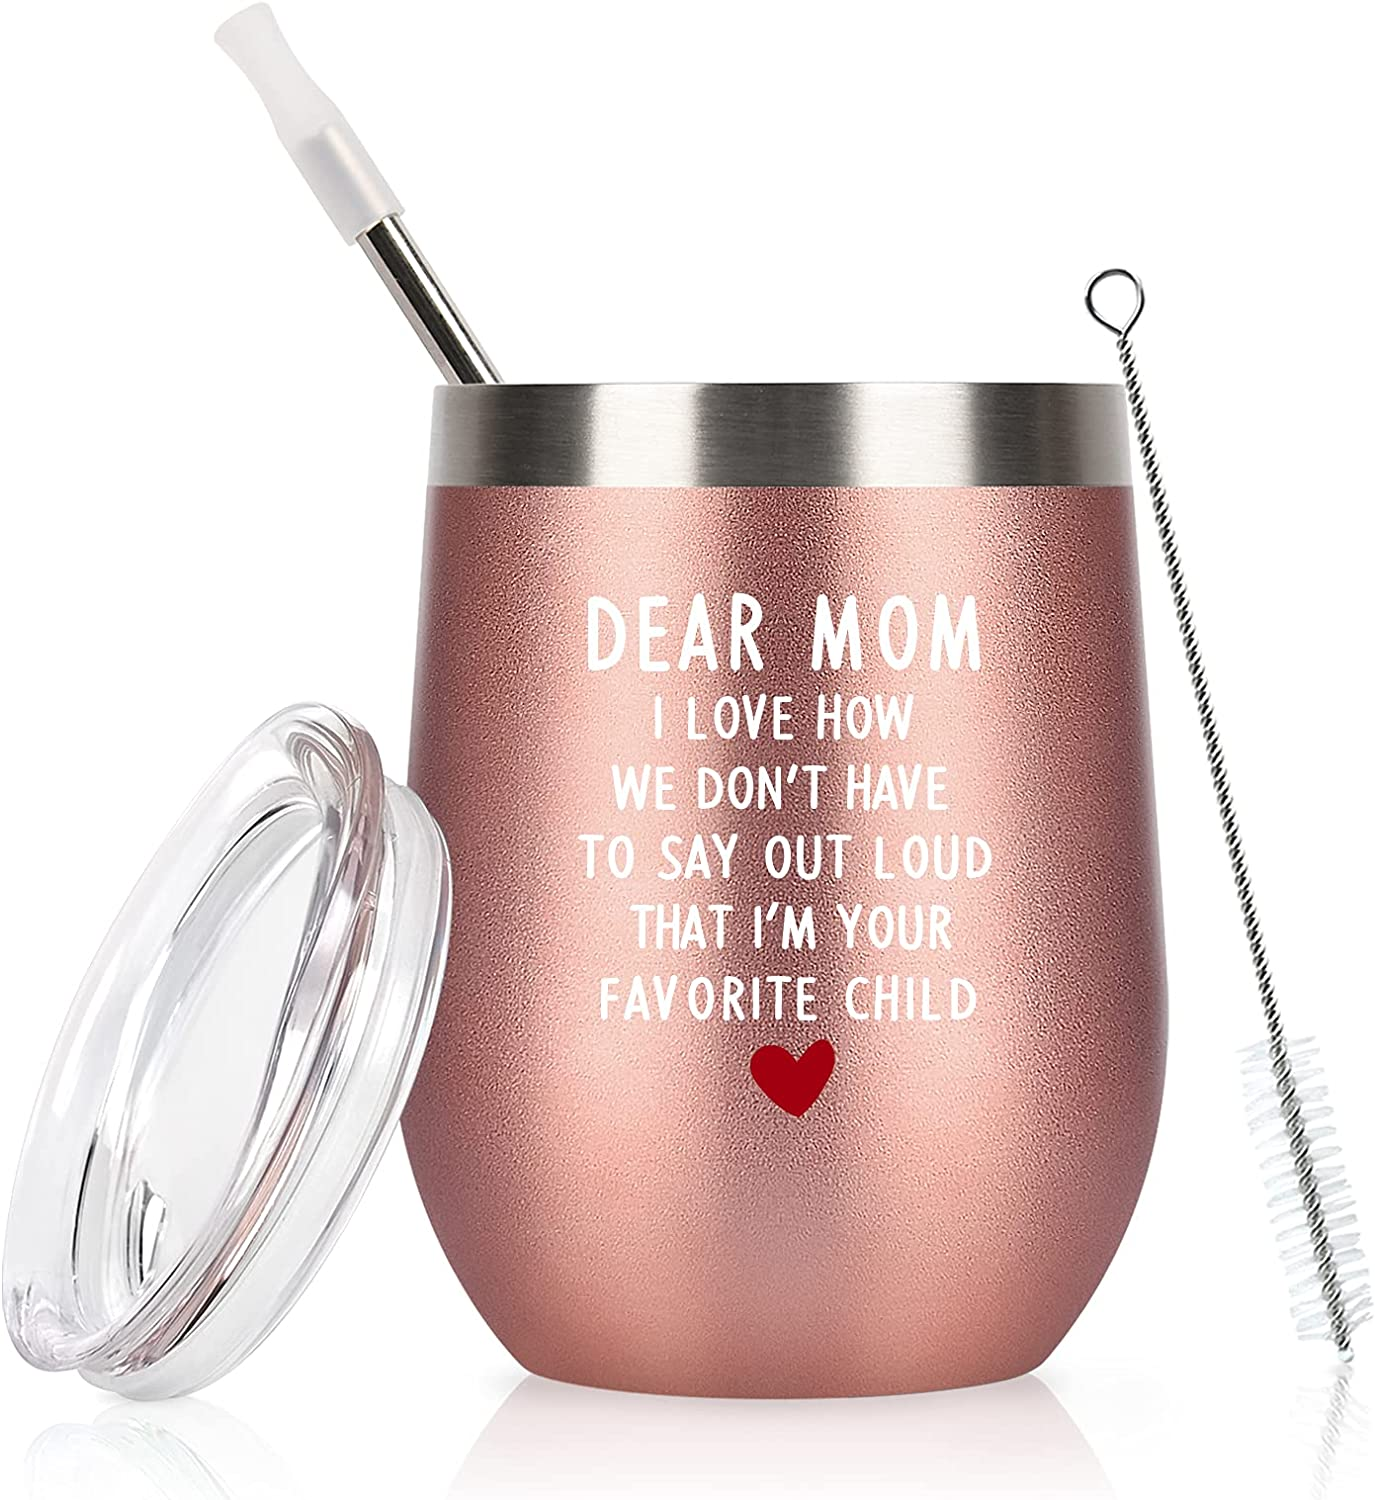 Lifecapido Mom Gifts, Dear Mom I Am Your Favorite Child Wine Tumbler, Birthday Christmas Mother's Day Gifts for Mom Mama Mother Mommy Women, 12Oz Stainless Steel Insulated Tumbler With Lid, Rose Gold